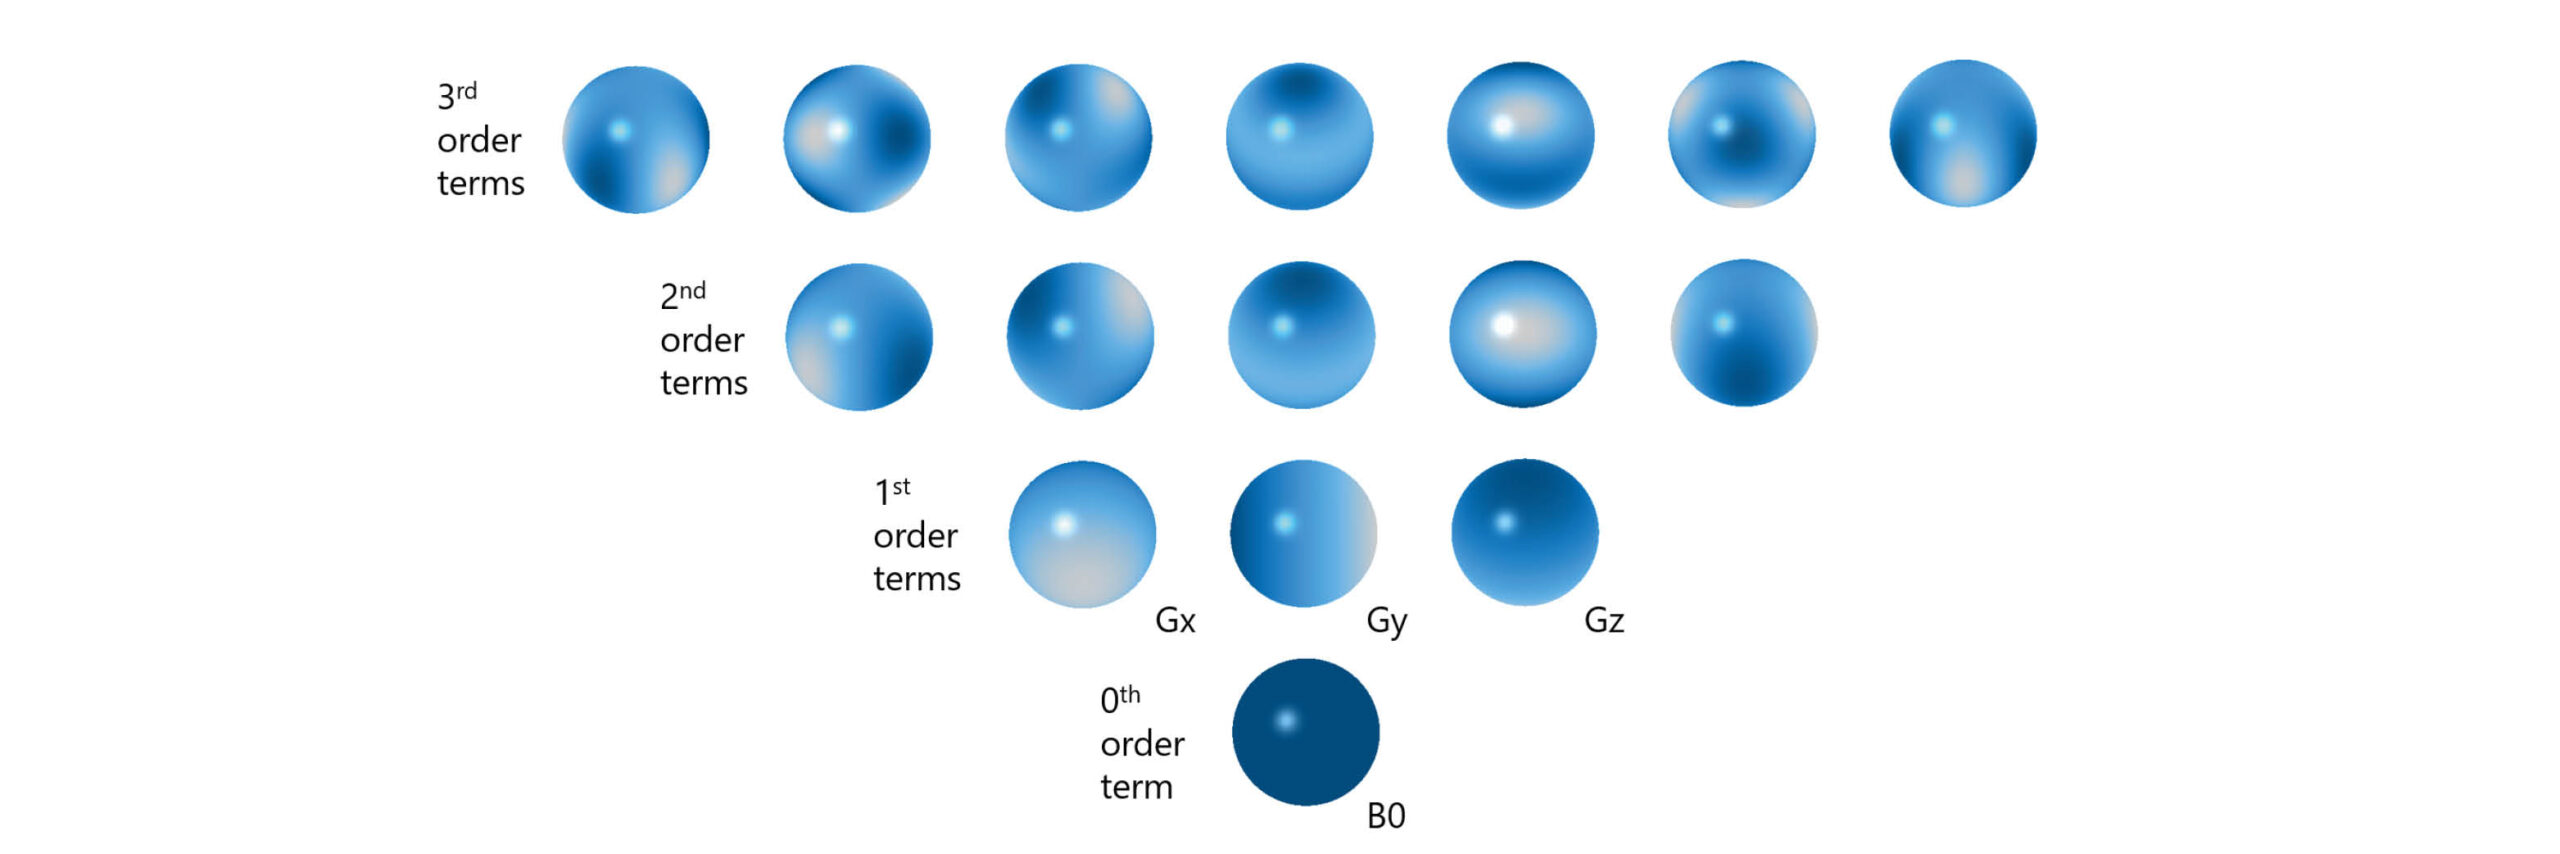 Spherical harmonic basis functions up to third order